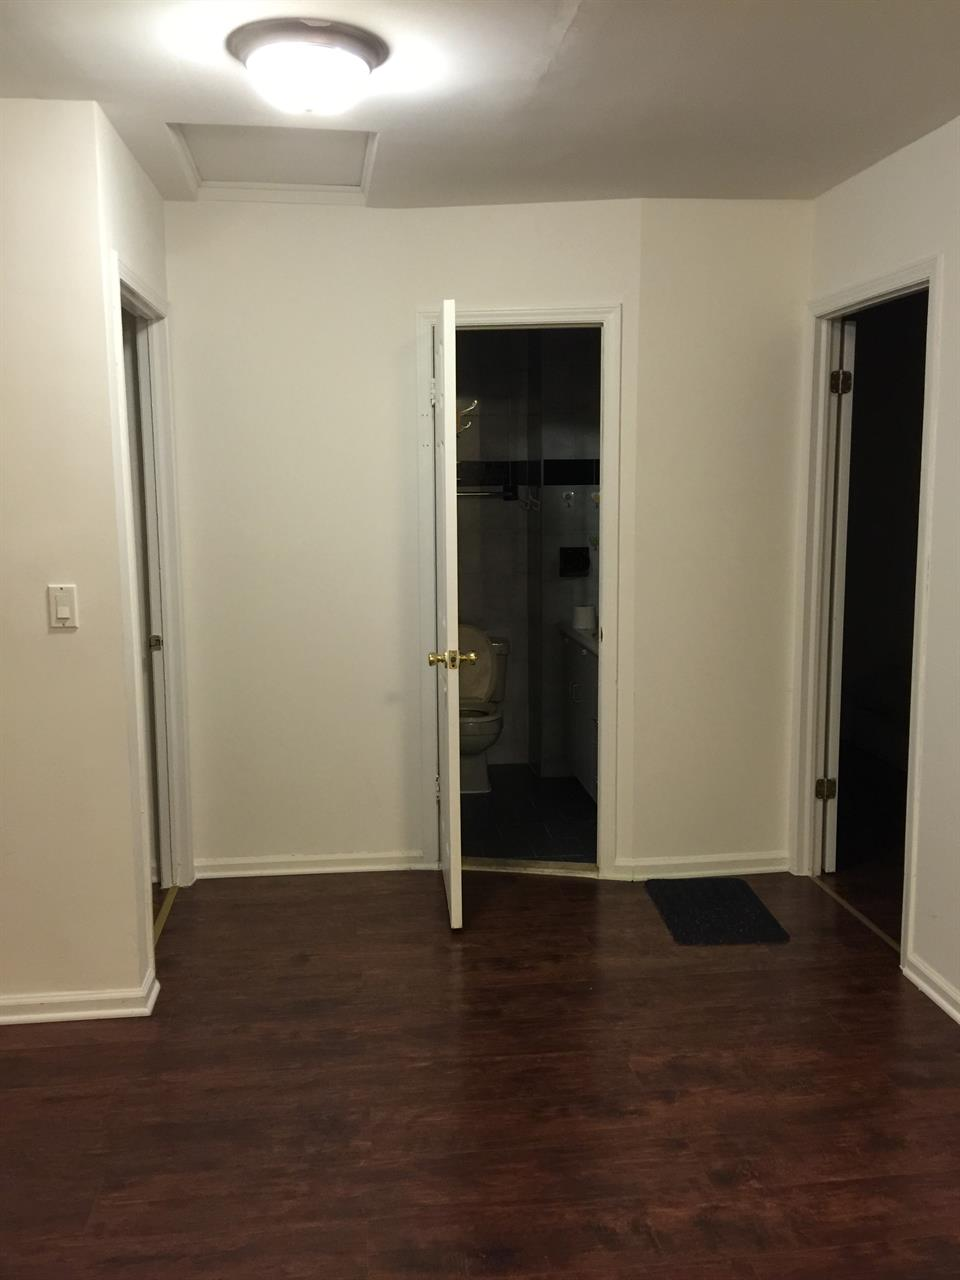 Additional photo for property listing at 1339 Bay Ridge Ave, Brooklyn, Ny 11228 Other Areas, USA